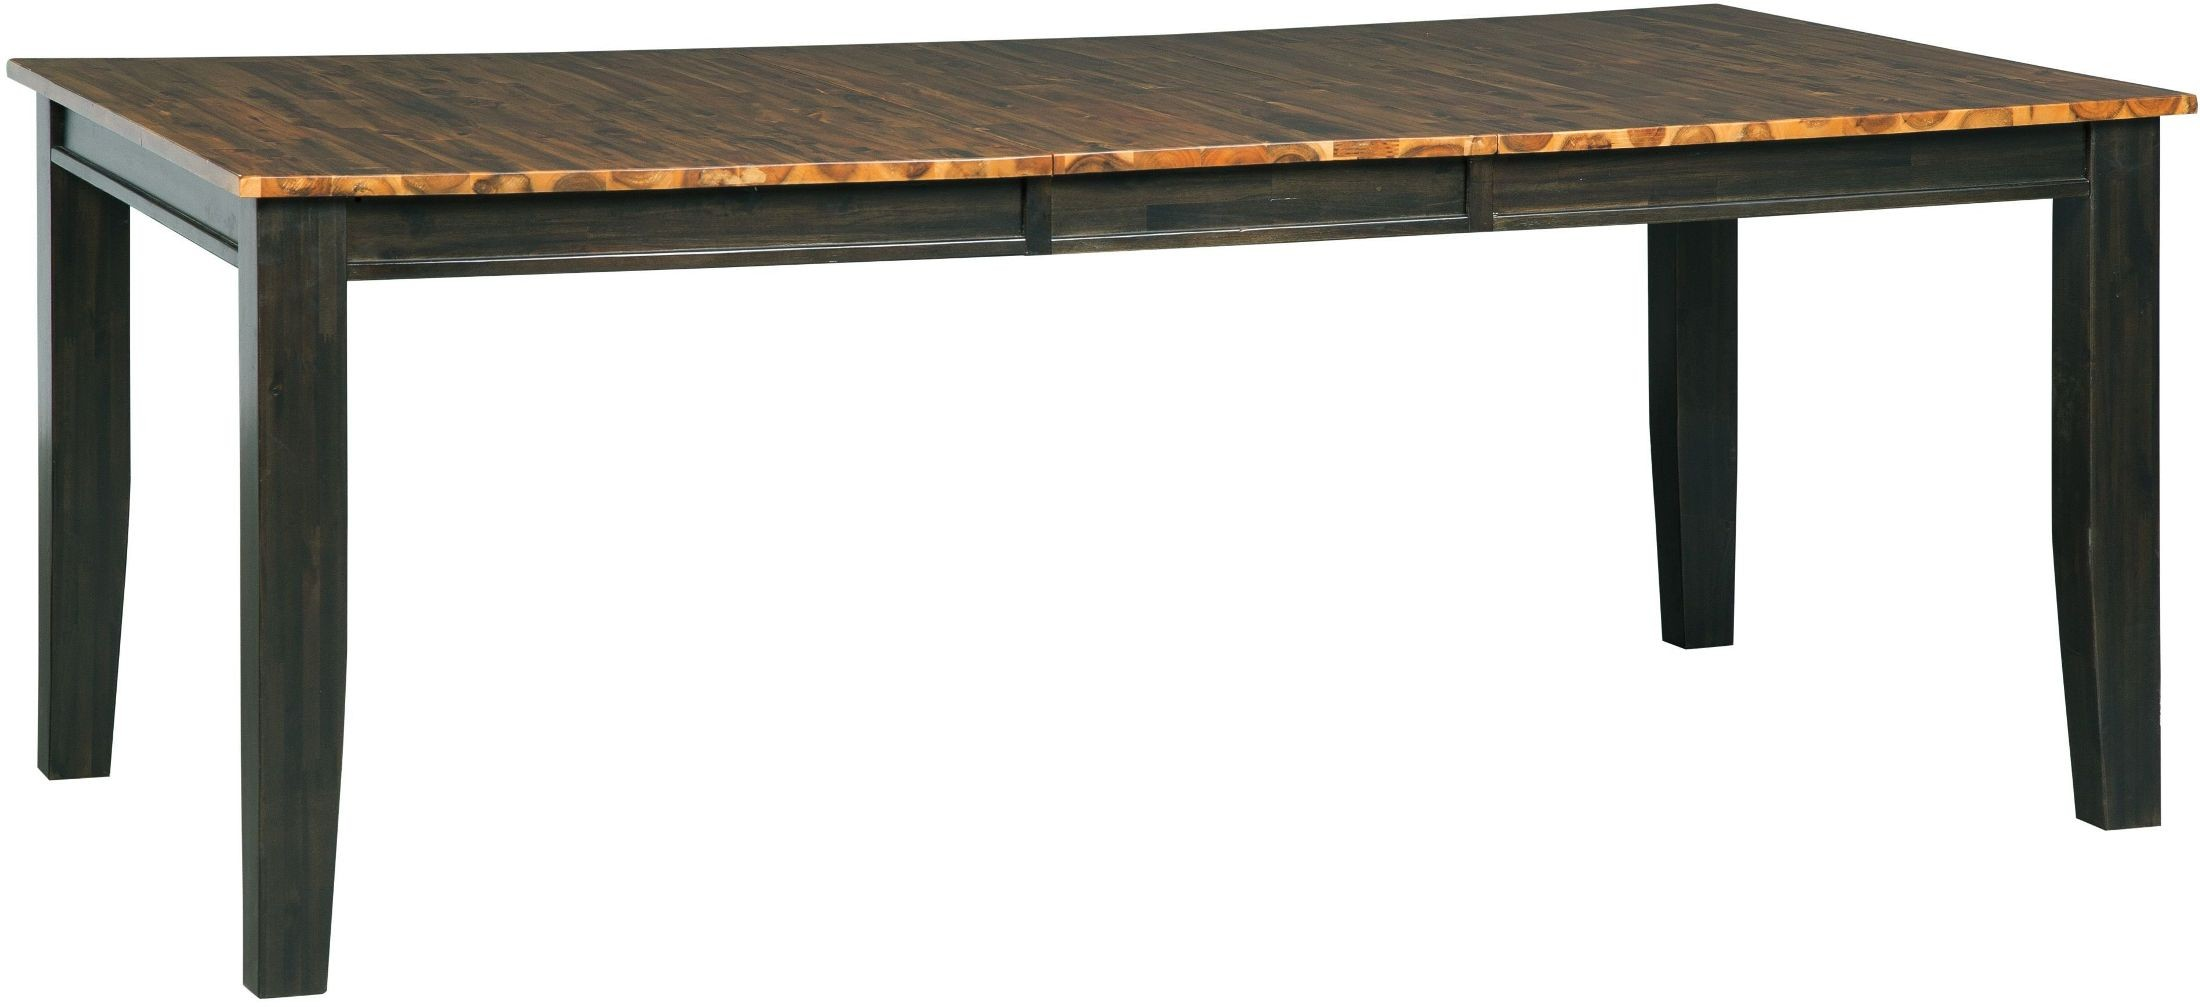 Quinley Two Tone Butterfly Extendable Rectangular Dining  : d645 35 sw1 from colemanfurniture.com size 2200 x 1007 jpeg 164kB